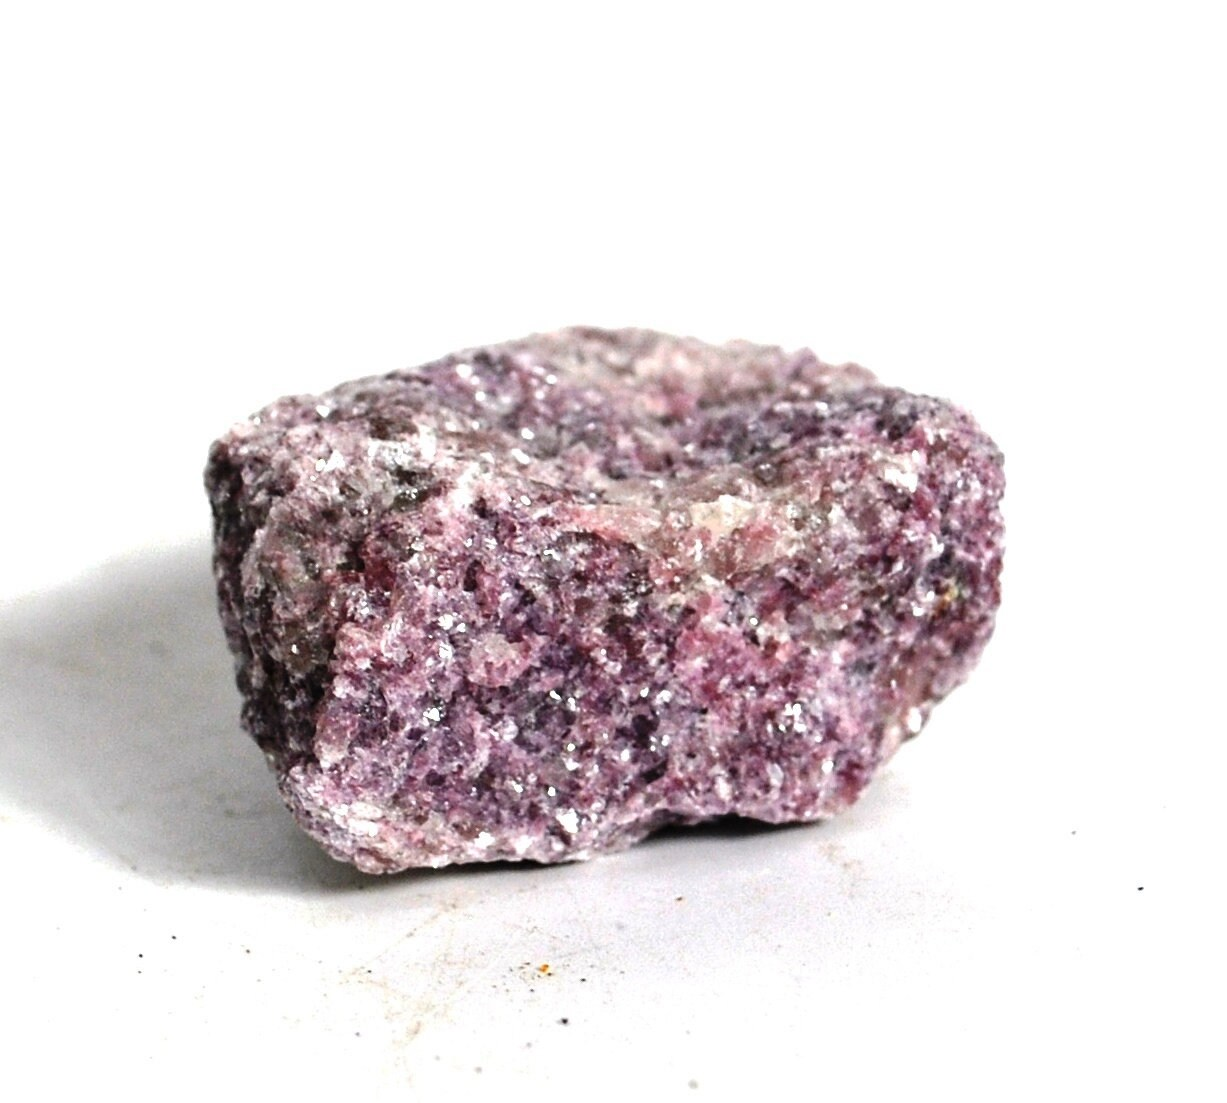 Raw Crystal Display Piece Crystal Crystal Collection Gift For Her Raw Stone Large Raw Lepidolite Specimen